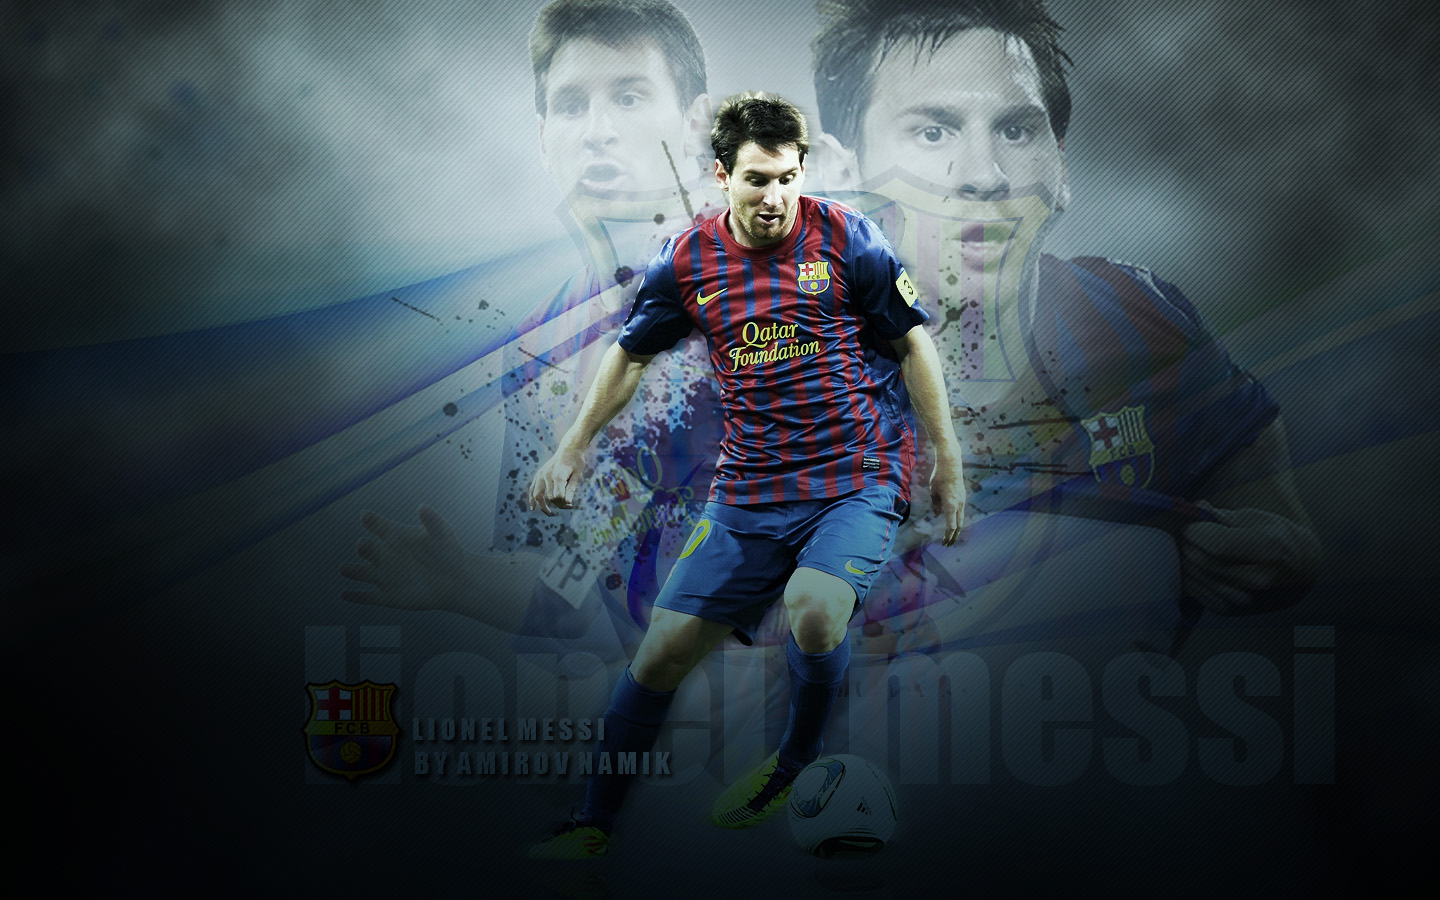 Sportsgallery-24 Messi Wallpaper 2012 Messi Wallpaper 2012 Hd  picture wallpaper image